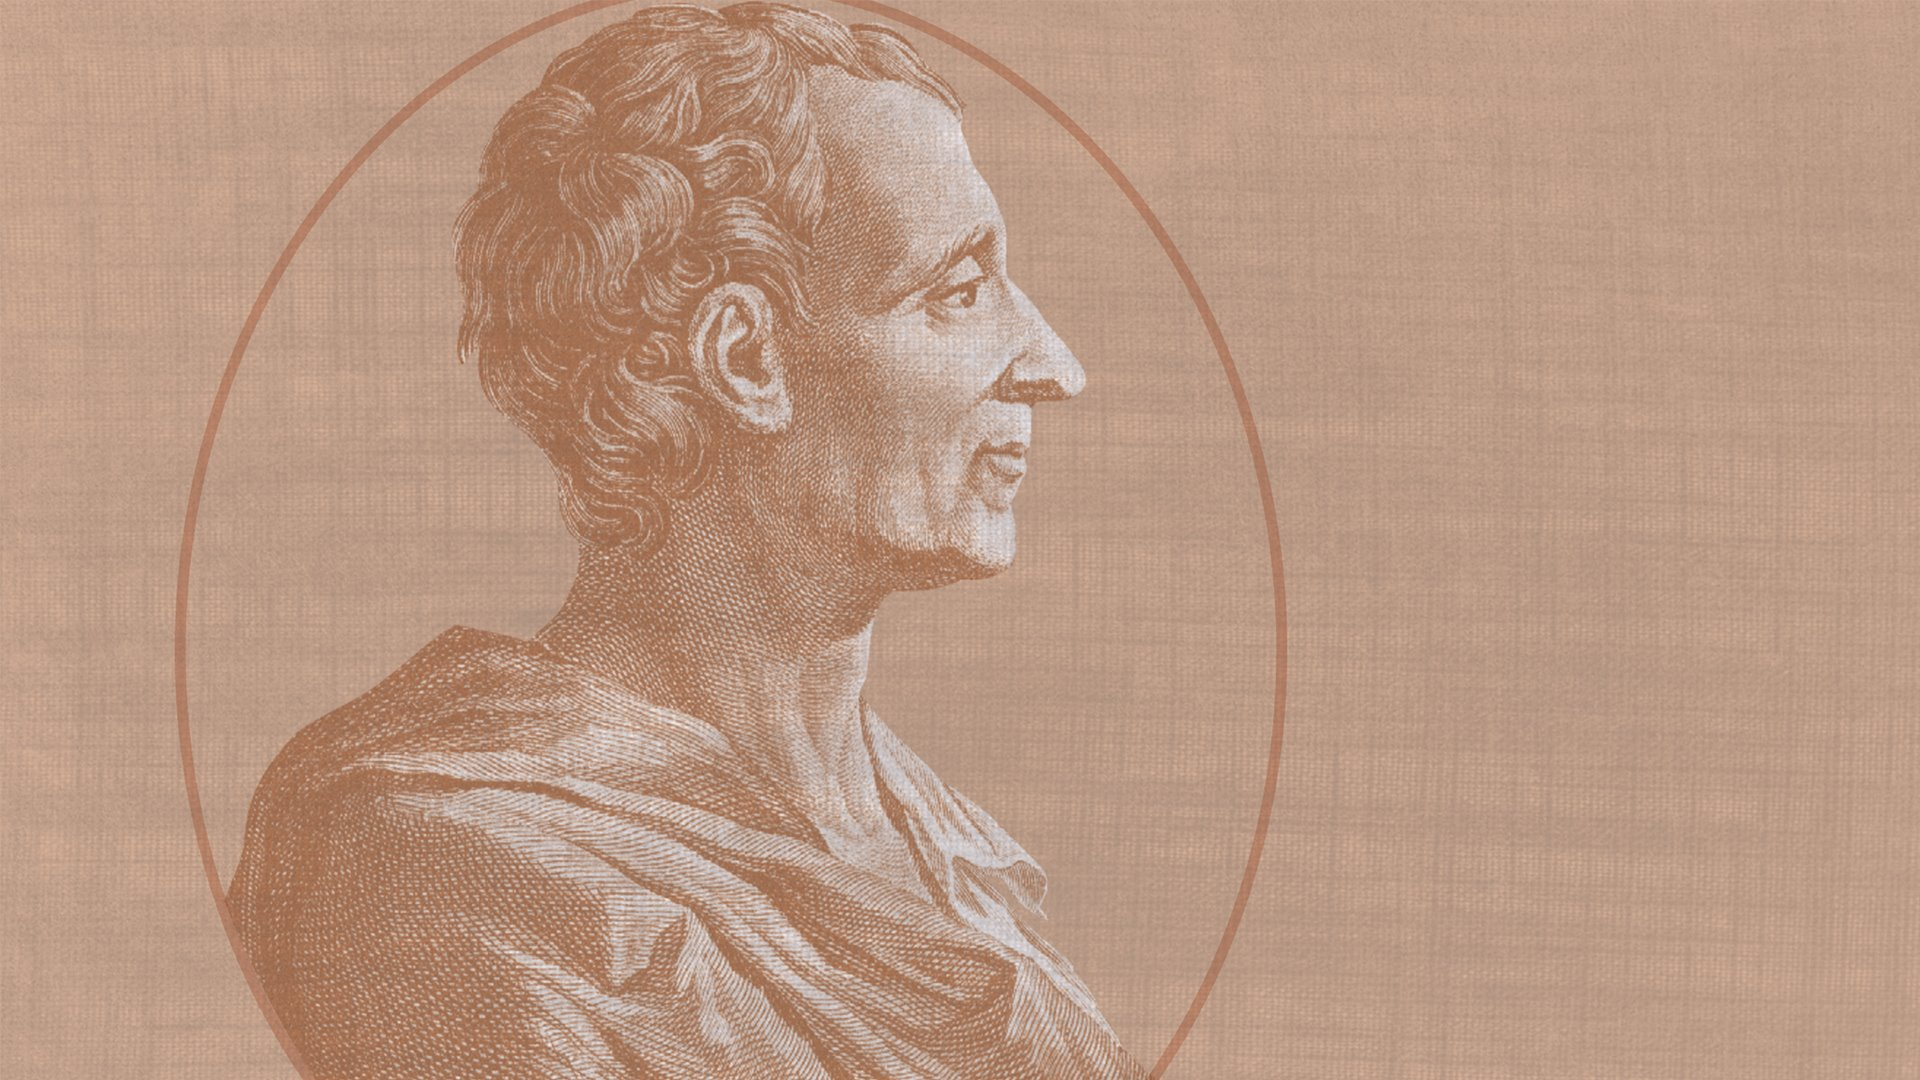 Montesquieu. Persian Letters and the other's point of view